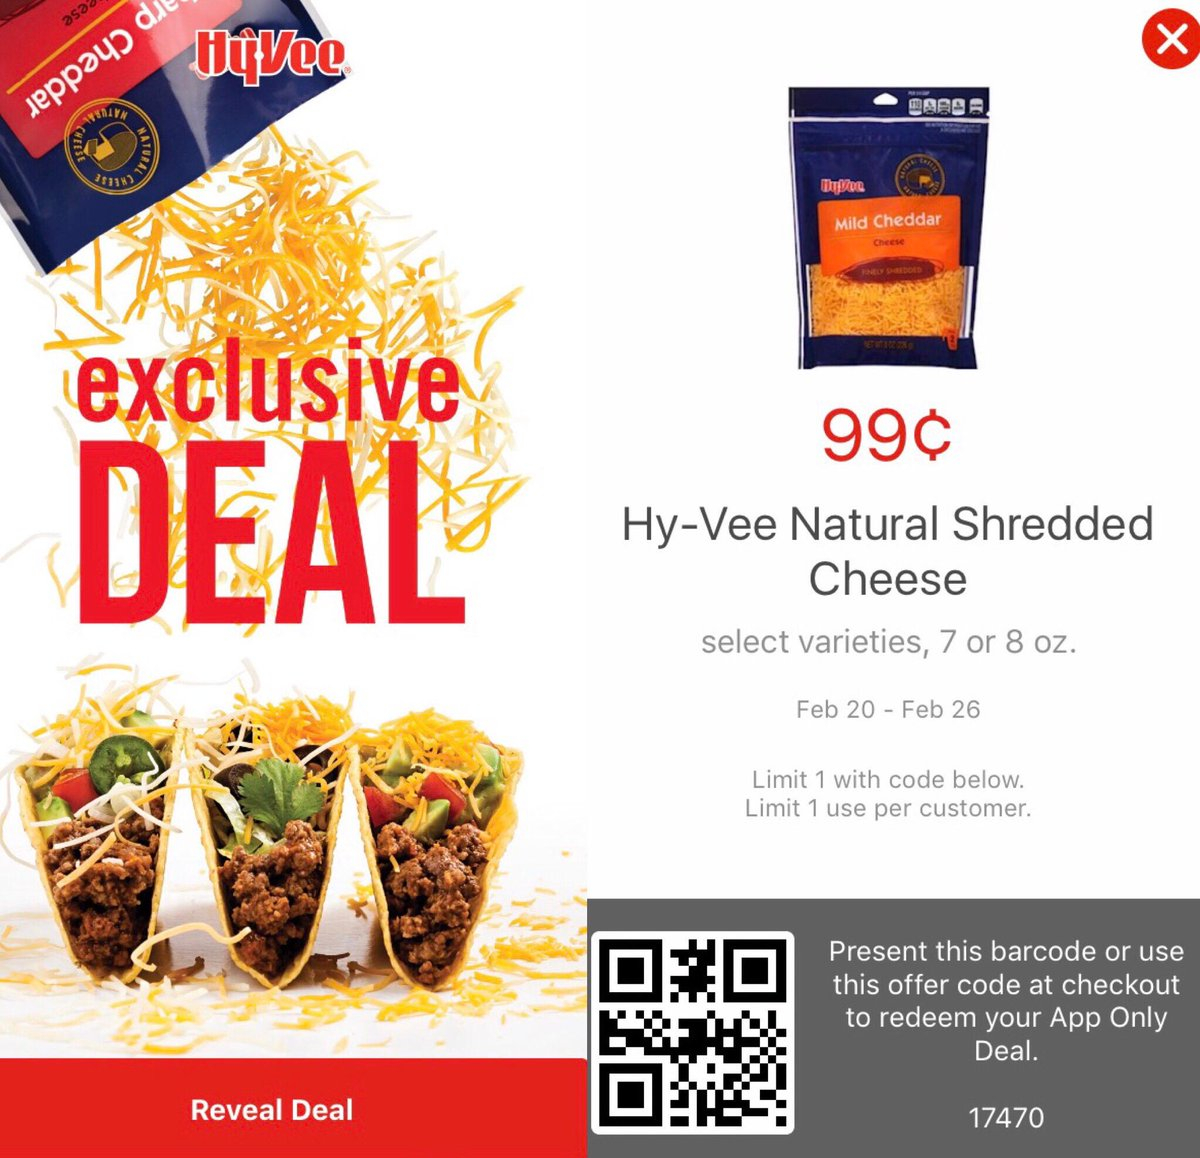 Cheese please! Be sure to download the Hy-Vee app to get this exclusiv...